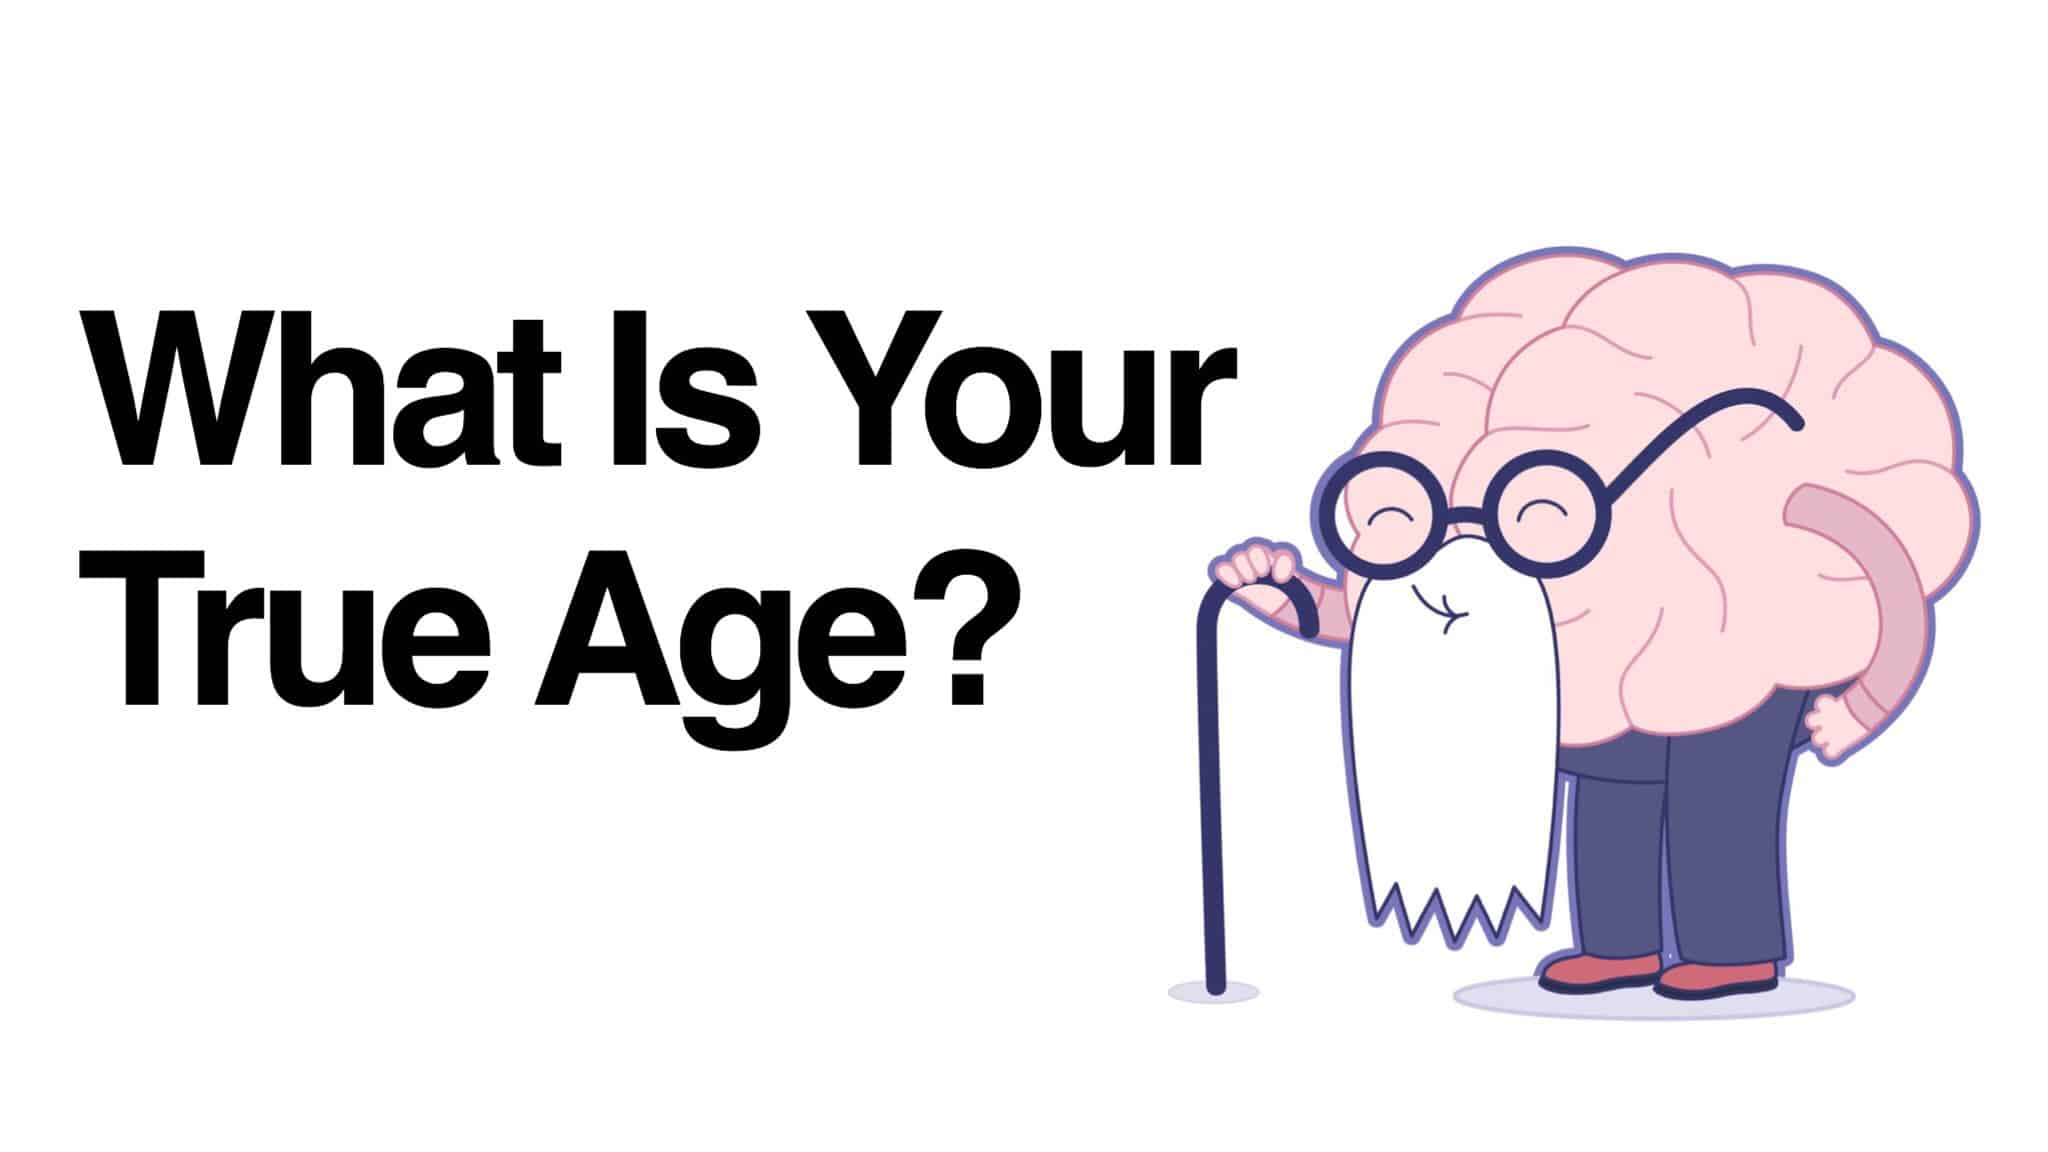 What is your age really?